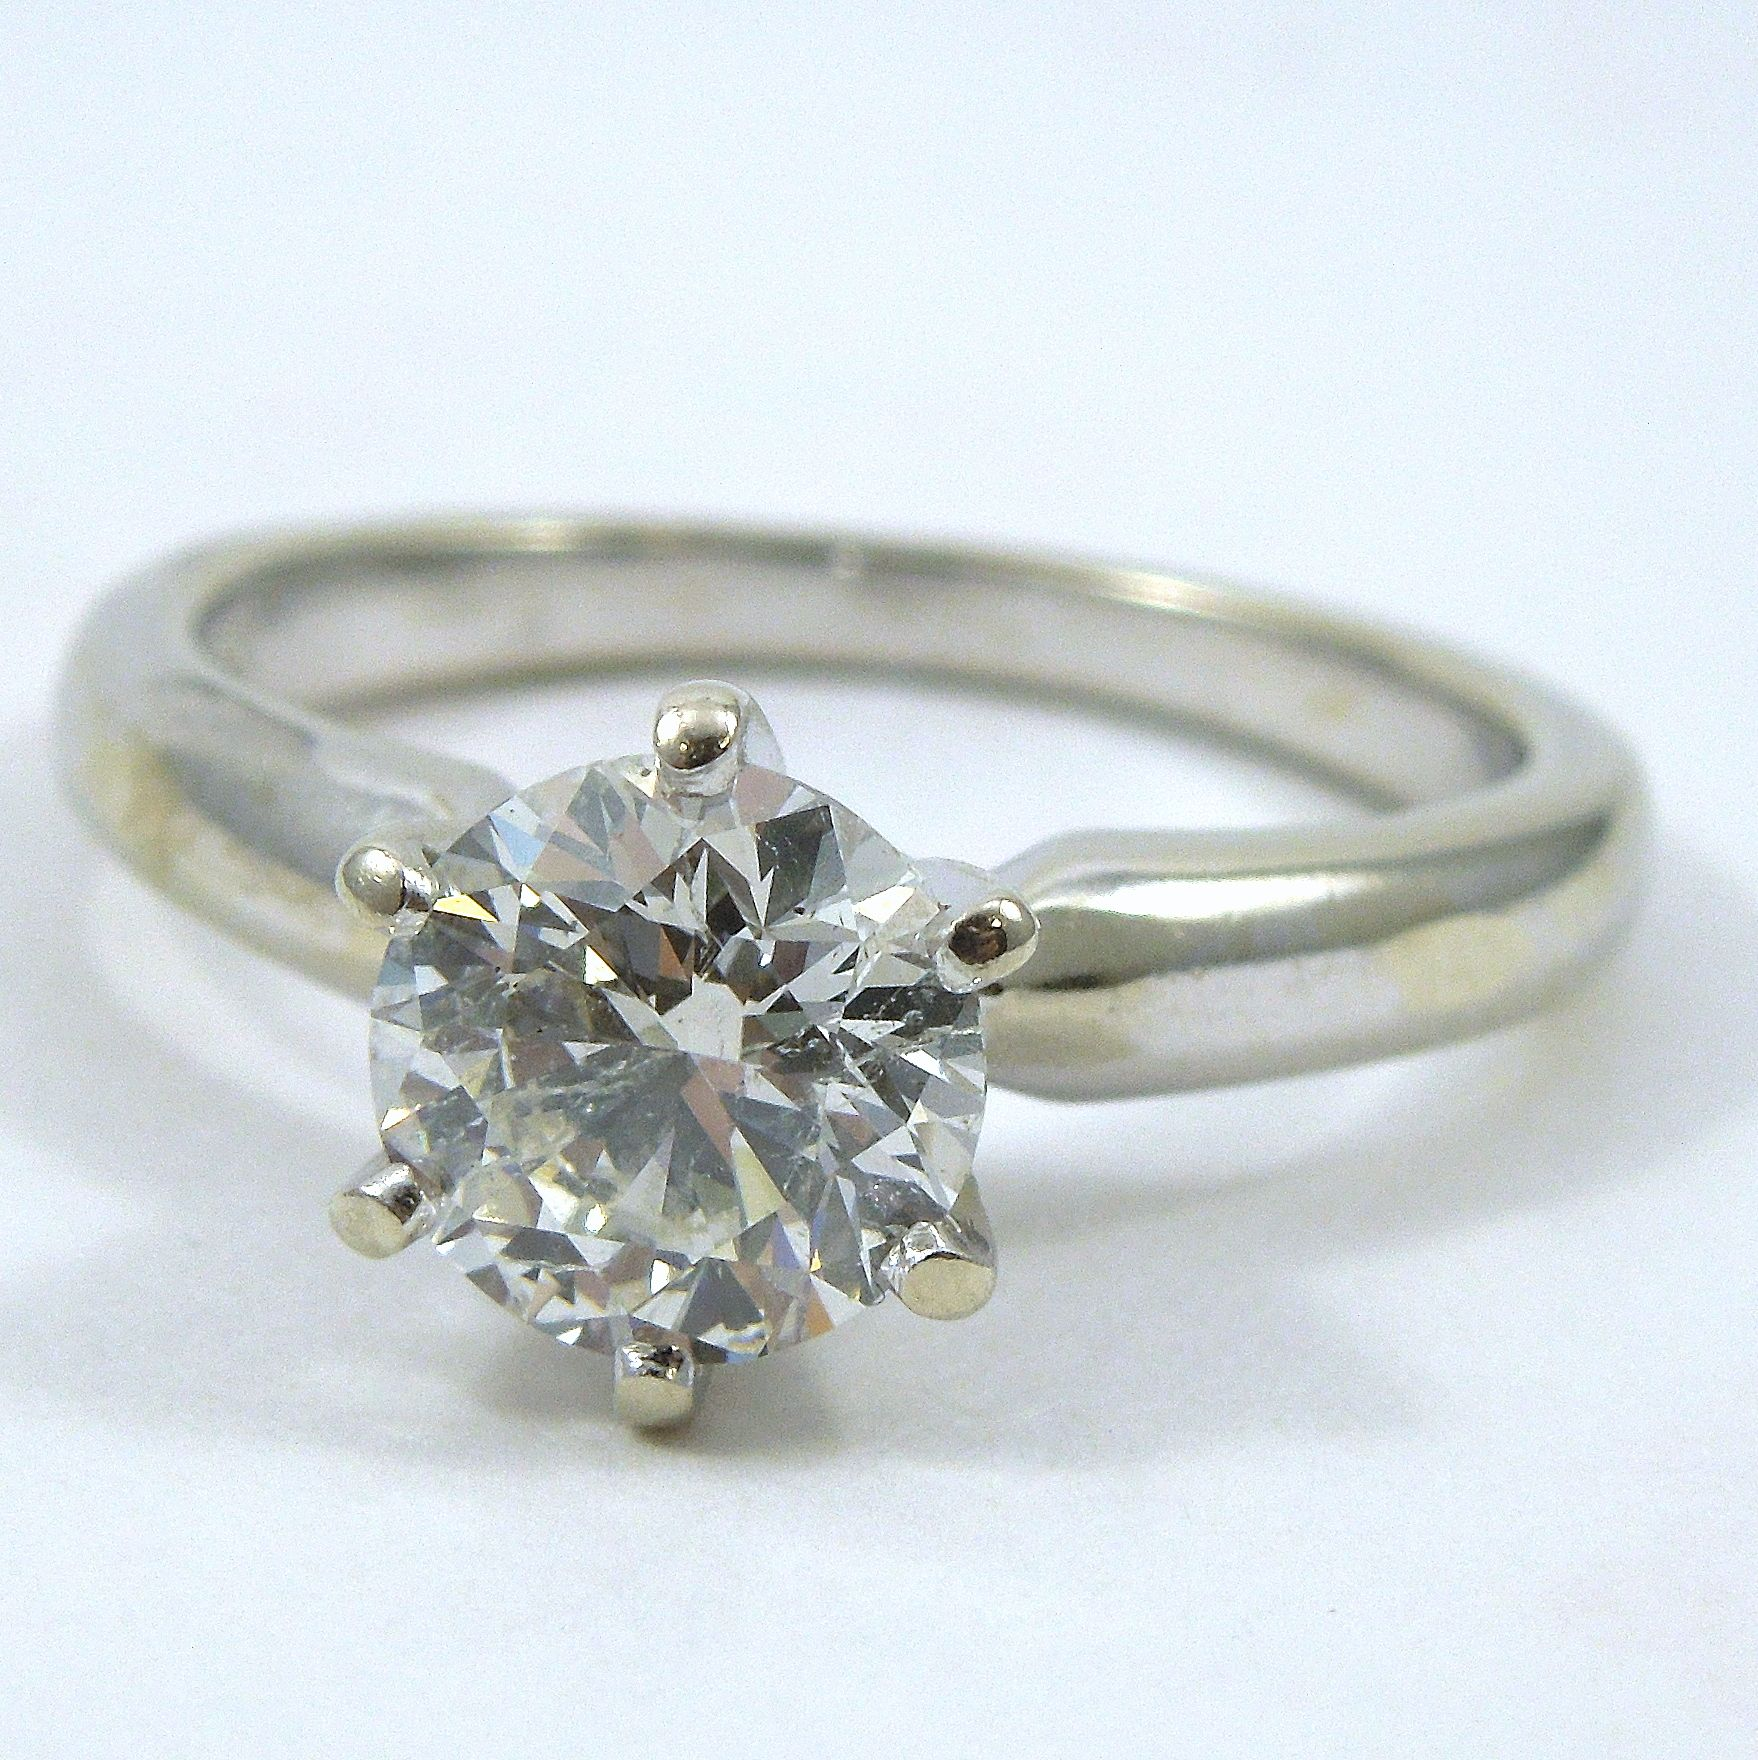 1 00 carat diamond engagement ring si2 clarity j color set in